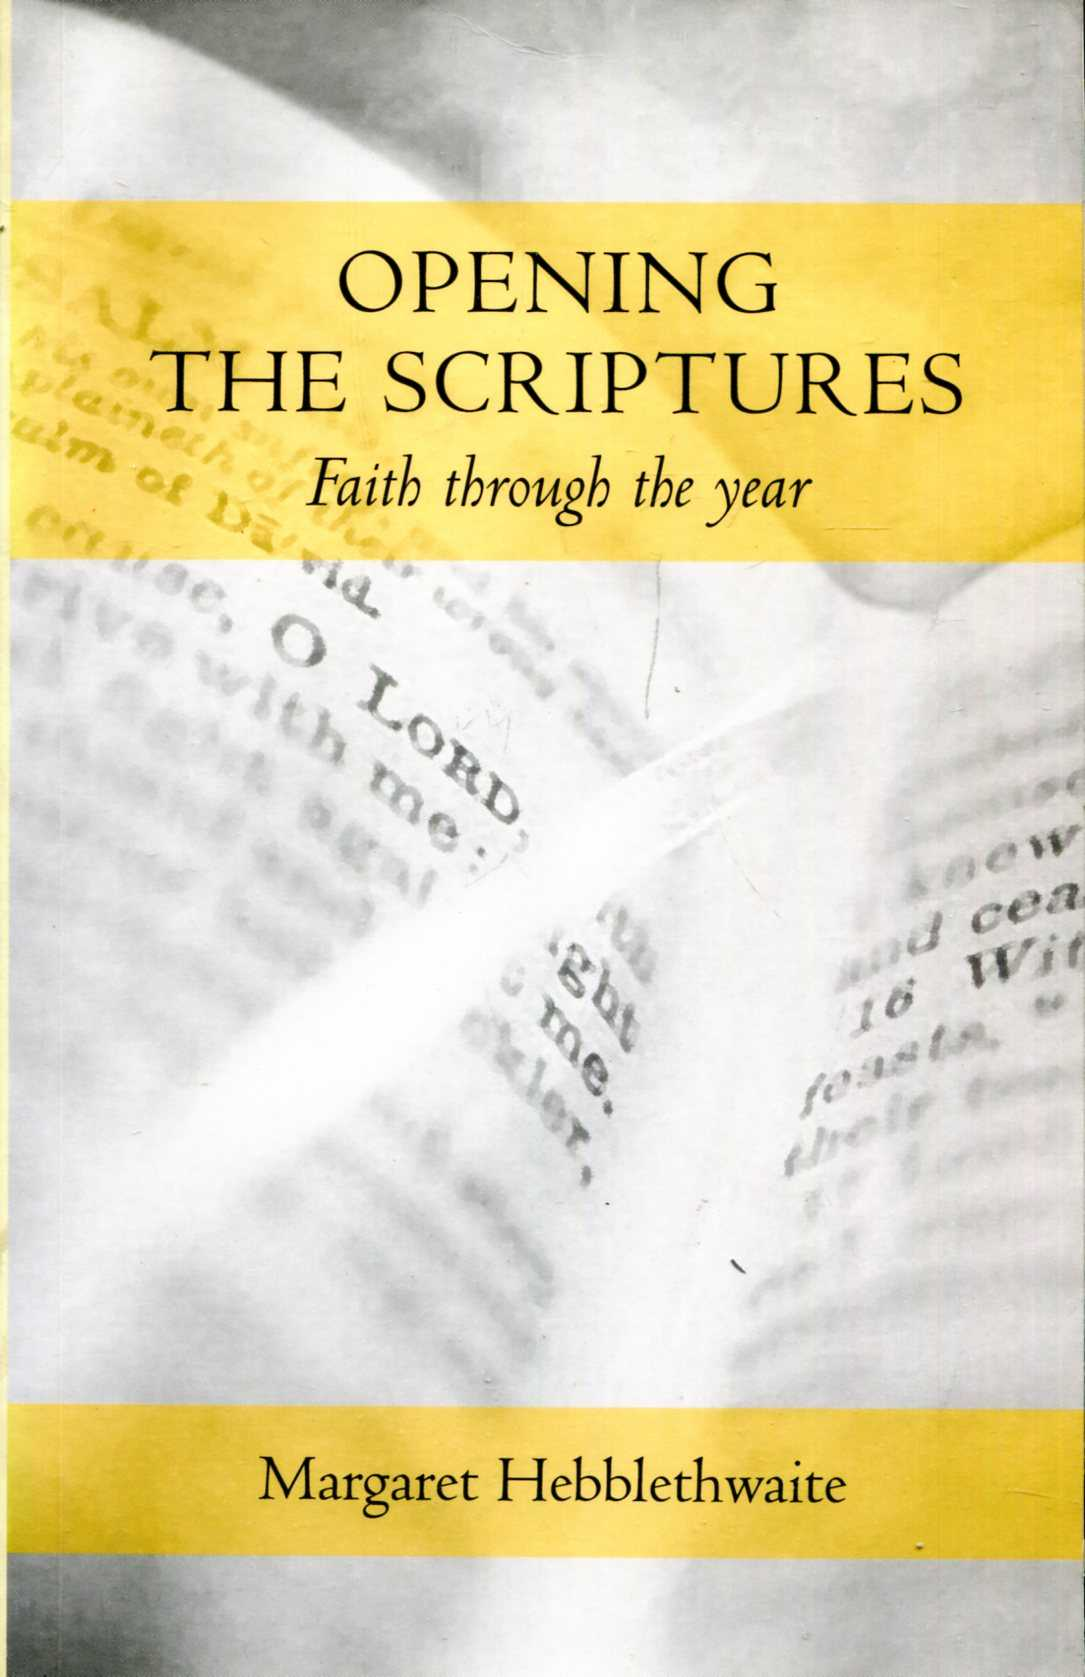 Image for Opening the Scriptures, faith through the year